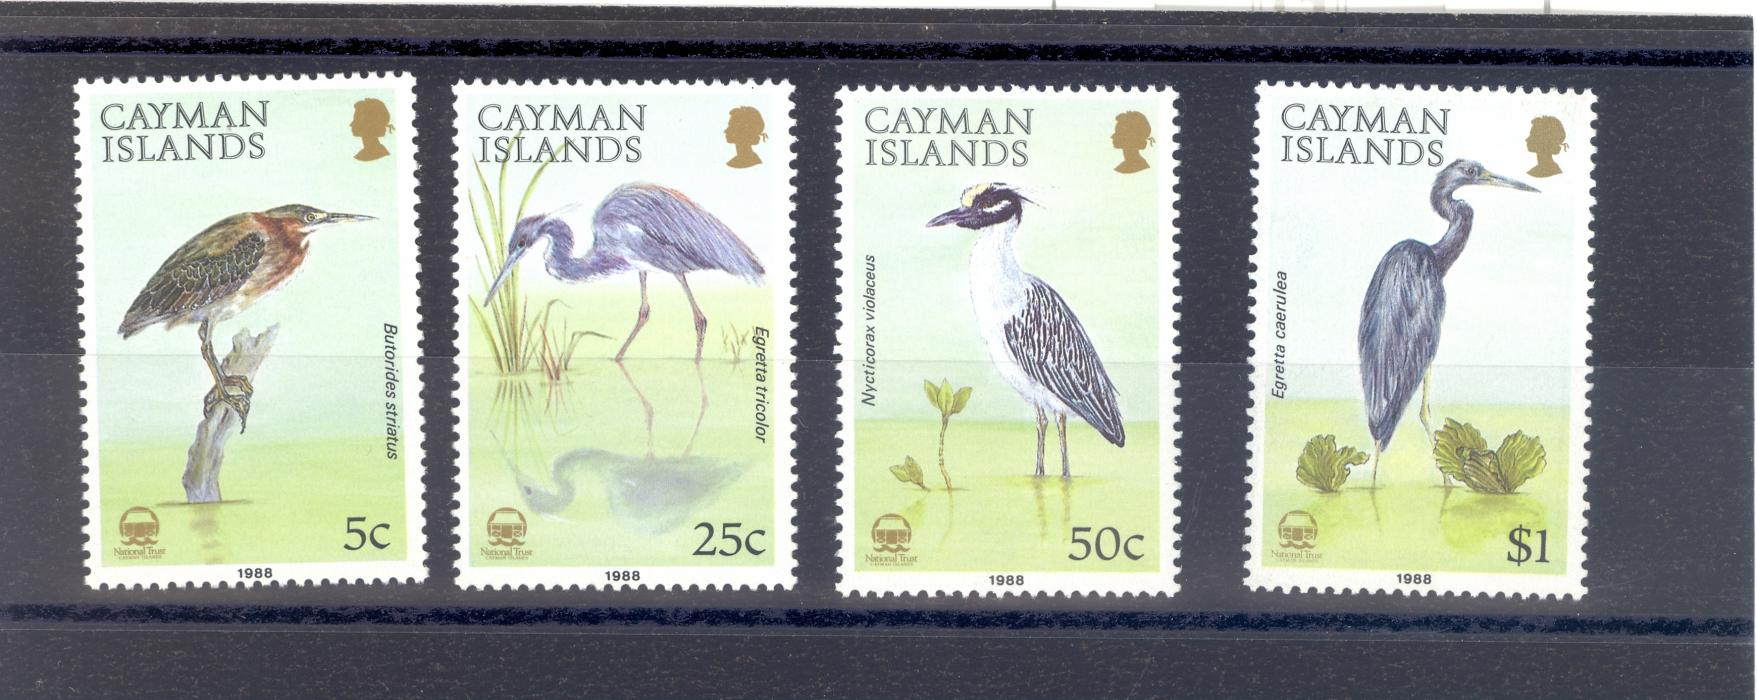 Cayman Islands SG 667-70  1988 Herons Set MNH